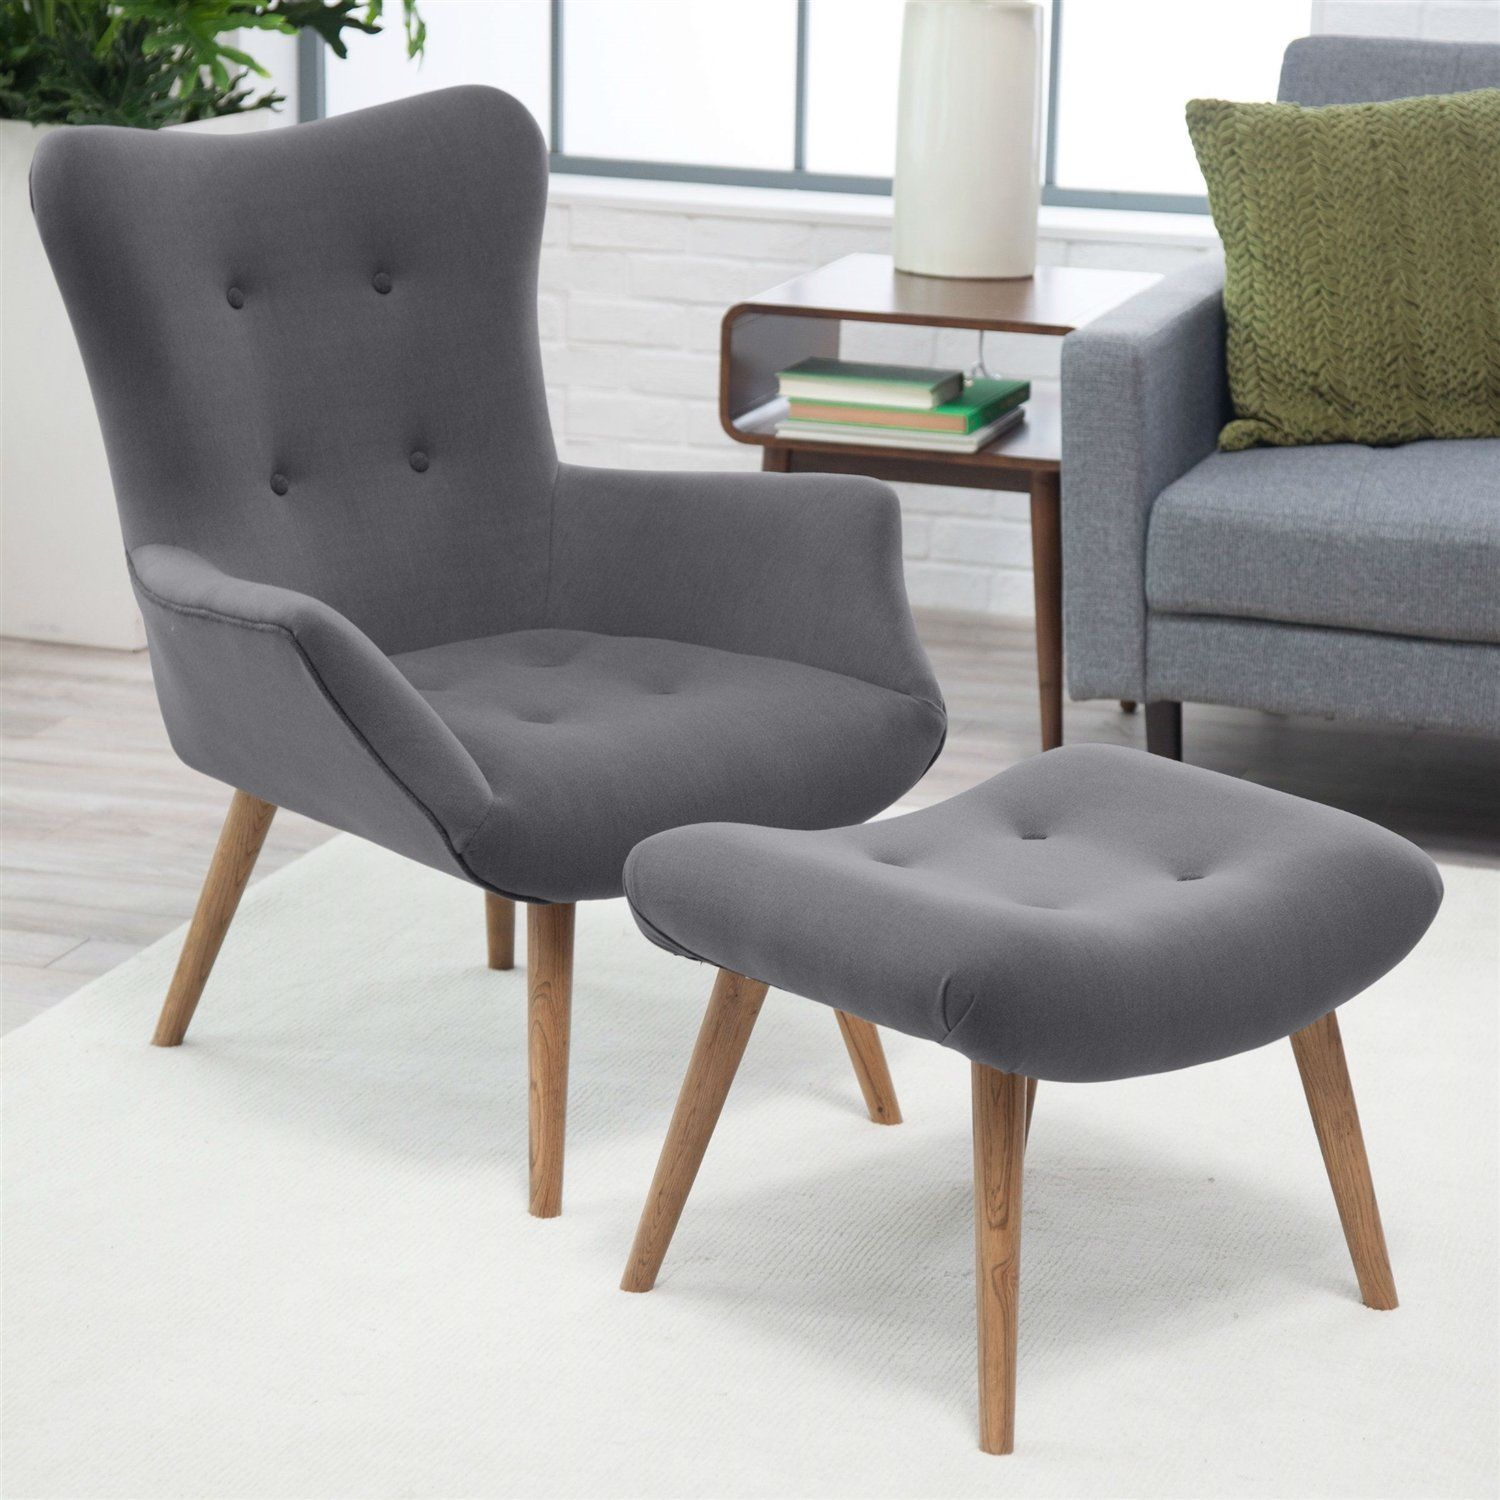 Modern Classic MidCentury Style Gray Accent Chair and